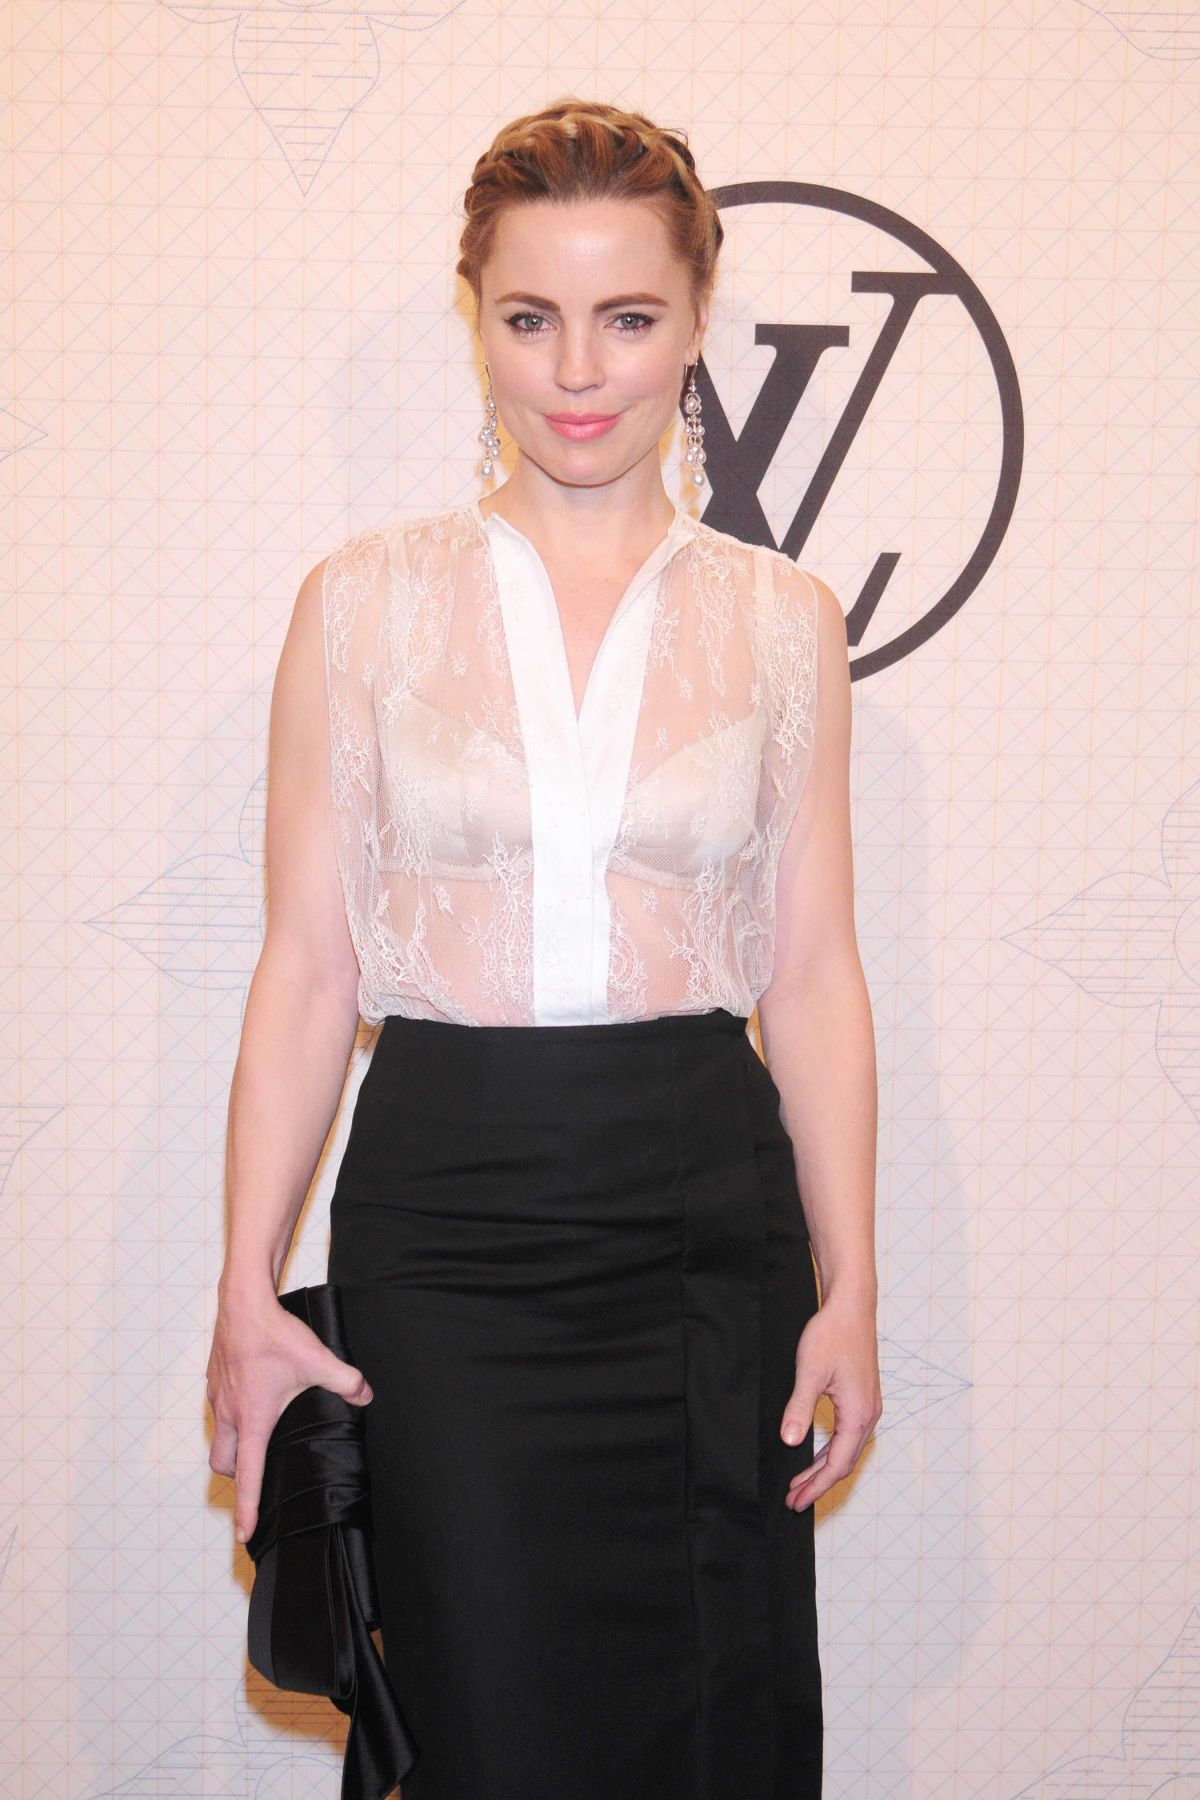 MELISSA GEORGE at Louis Vuitton Monogram Celebration in New York